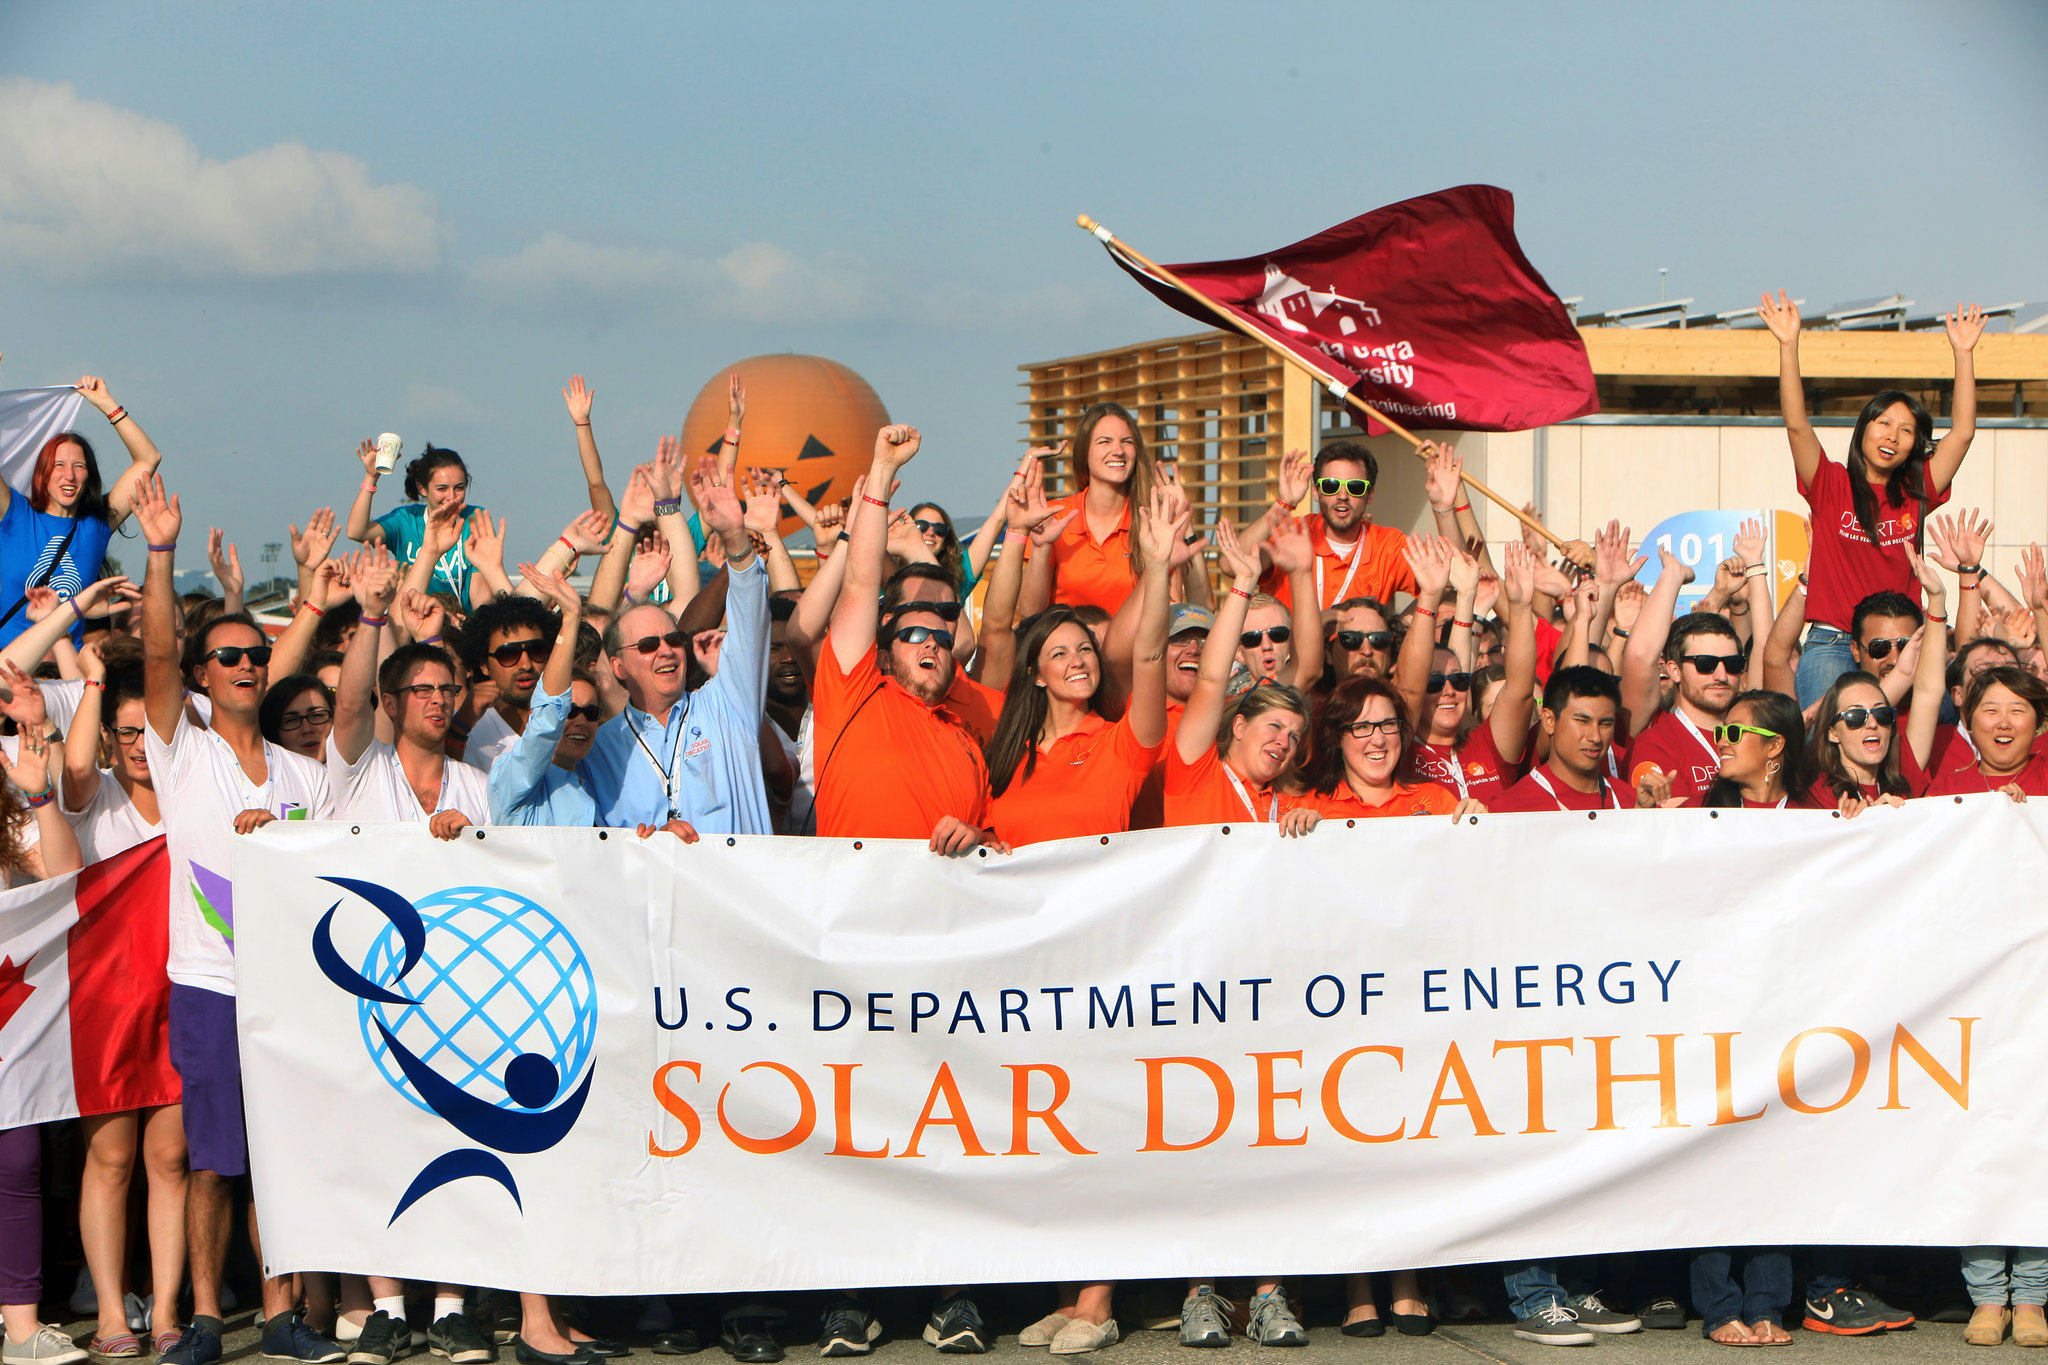 A group of people holding a solar decathlon banner.